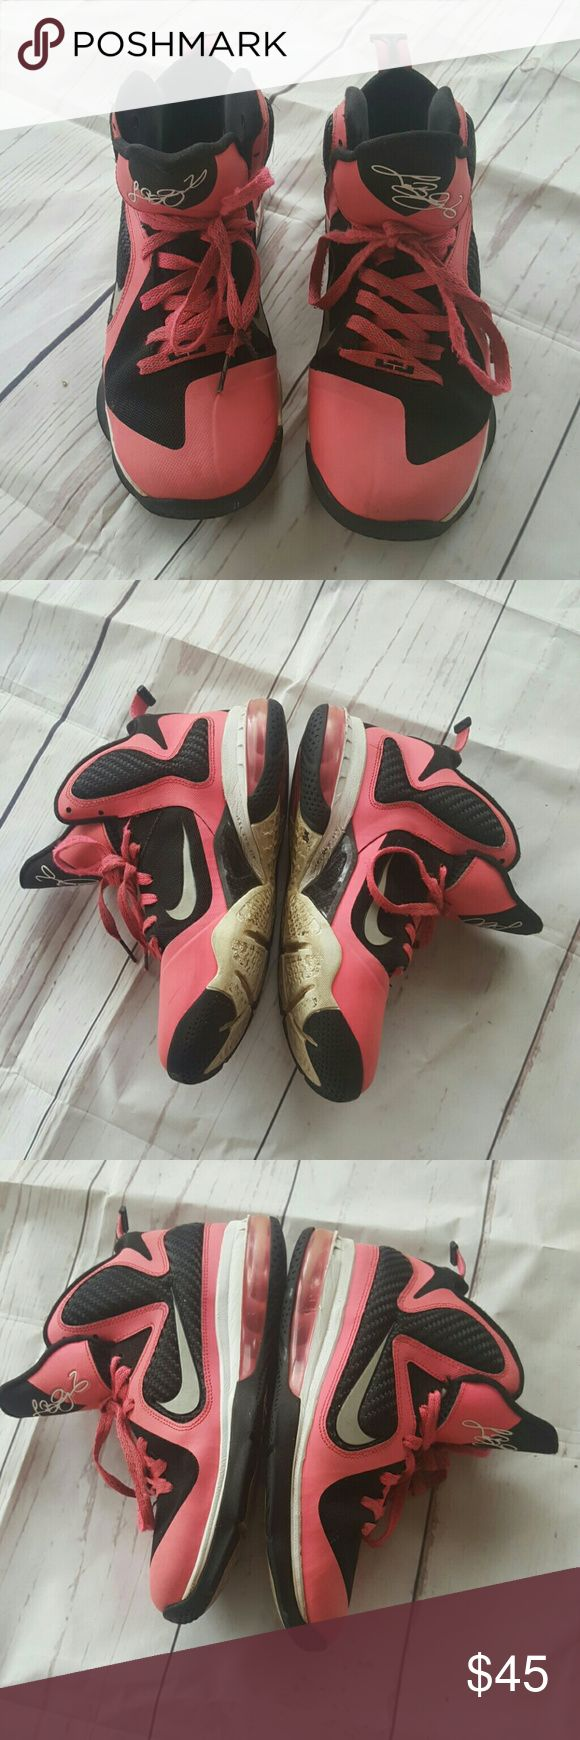 7y boys  le bron james nike pink Awesome pair of hot pink and black LeBron James Nike size 7y and boys some signs of wear but clean. le bron james Shoes Sneakers